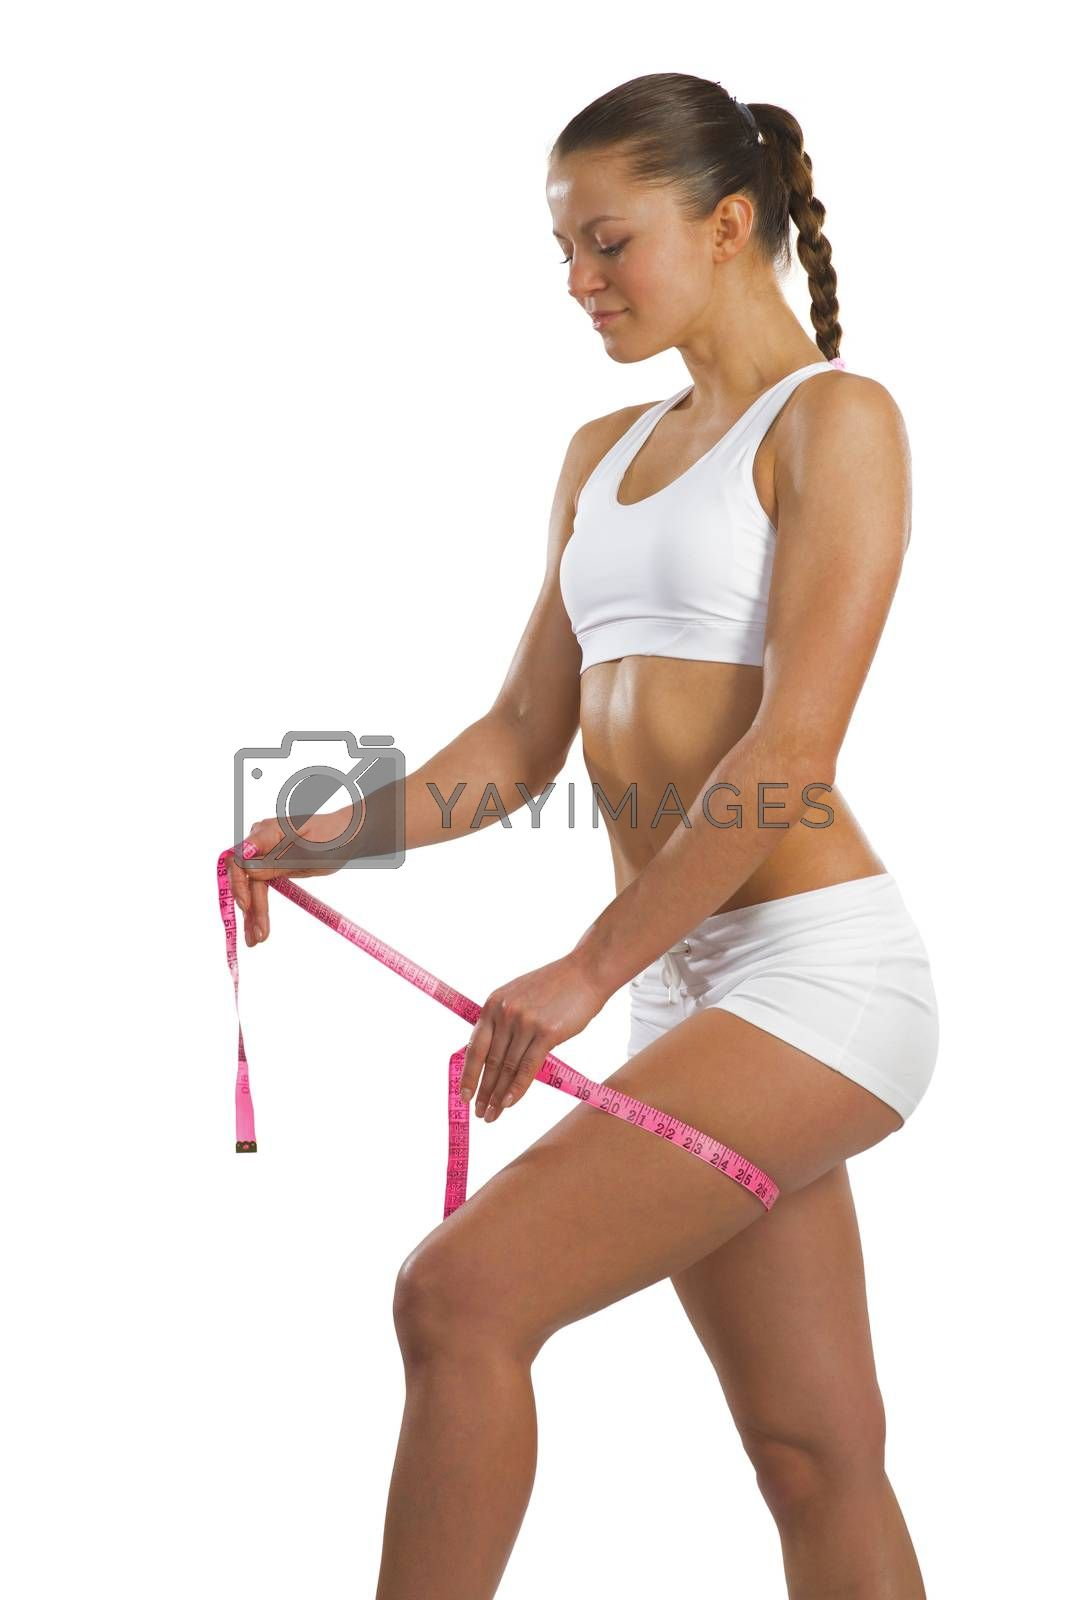 Royalty free image of athletic woman measuring thigh by adam121